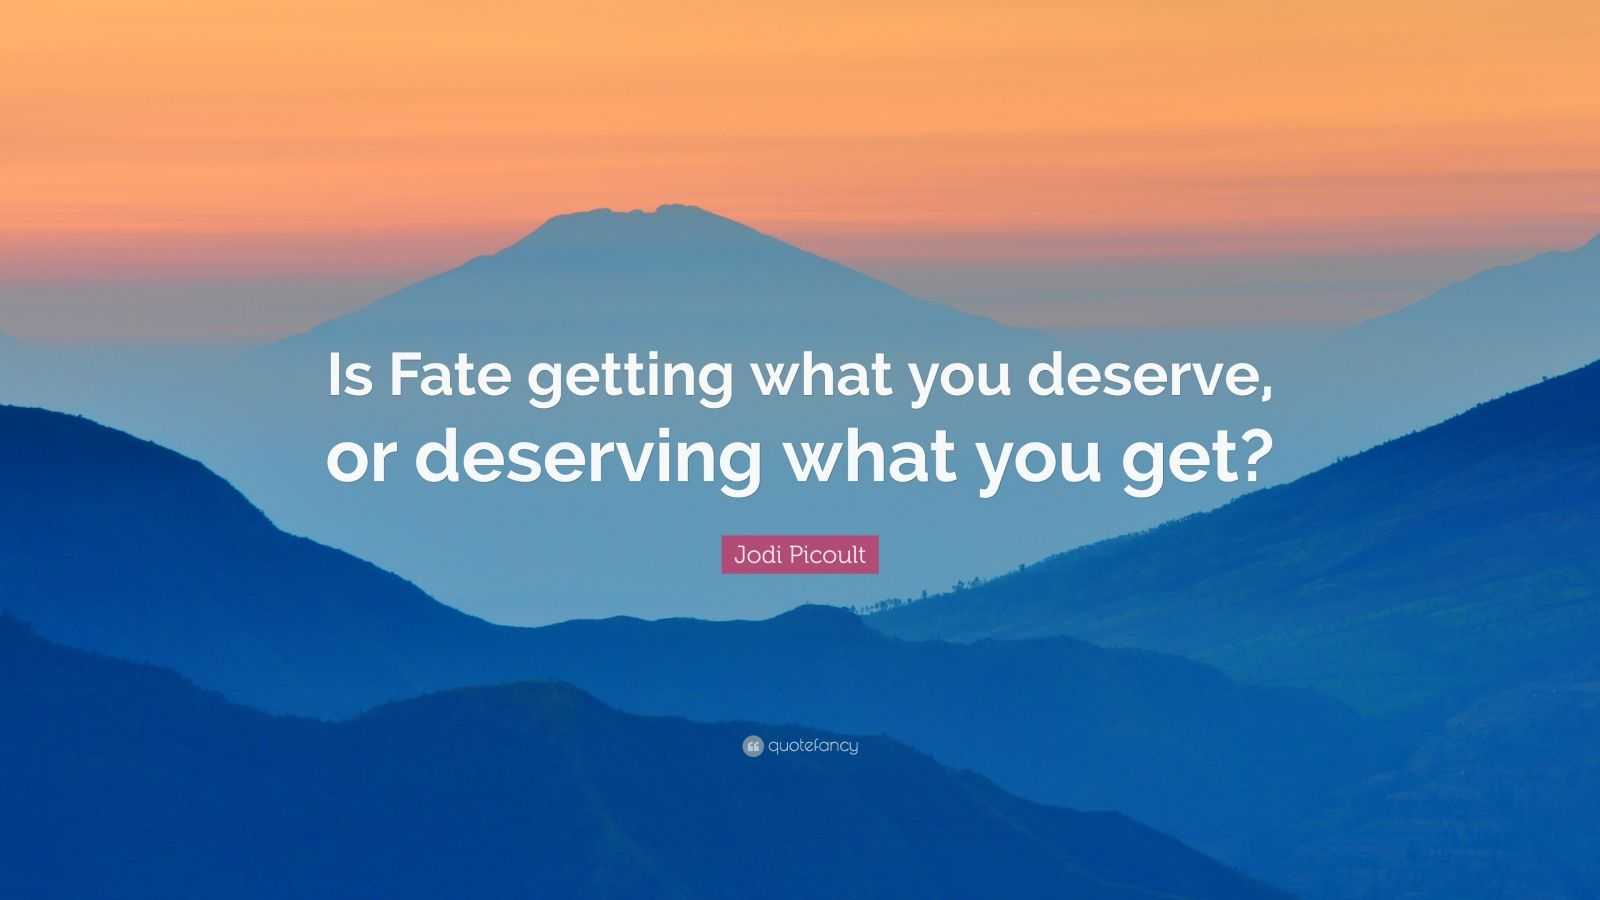 """Jodi Picoult Quote: """"Is Fate getting what you deserve, or deserving what you get?"""""""